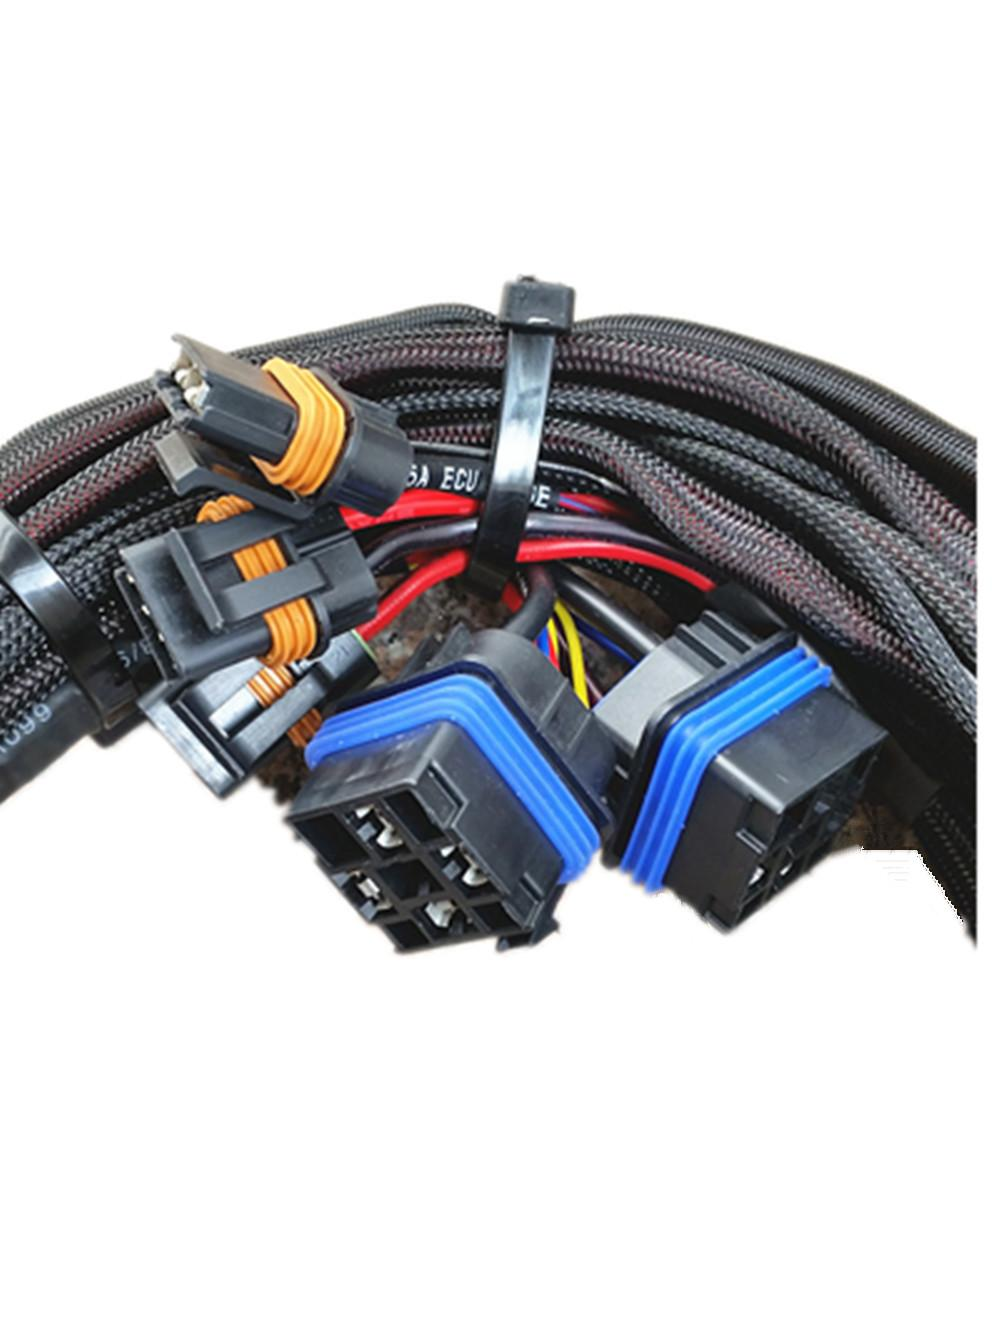 Wiring Harness Assembly for Automotive Aftermarket 2